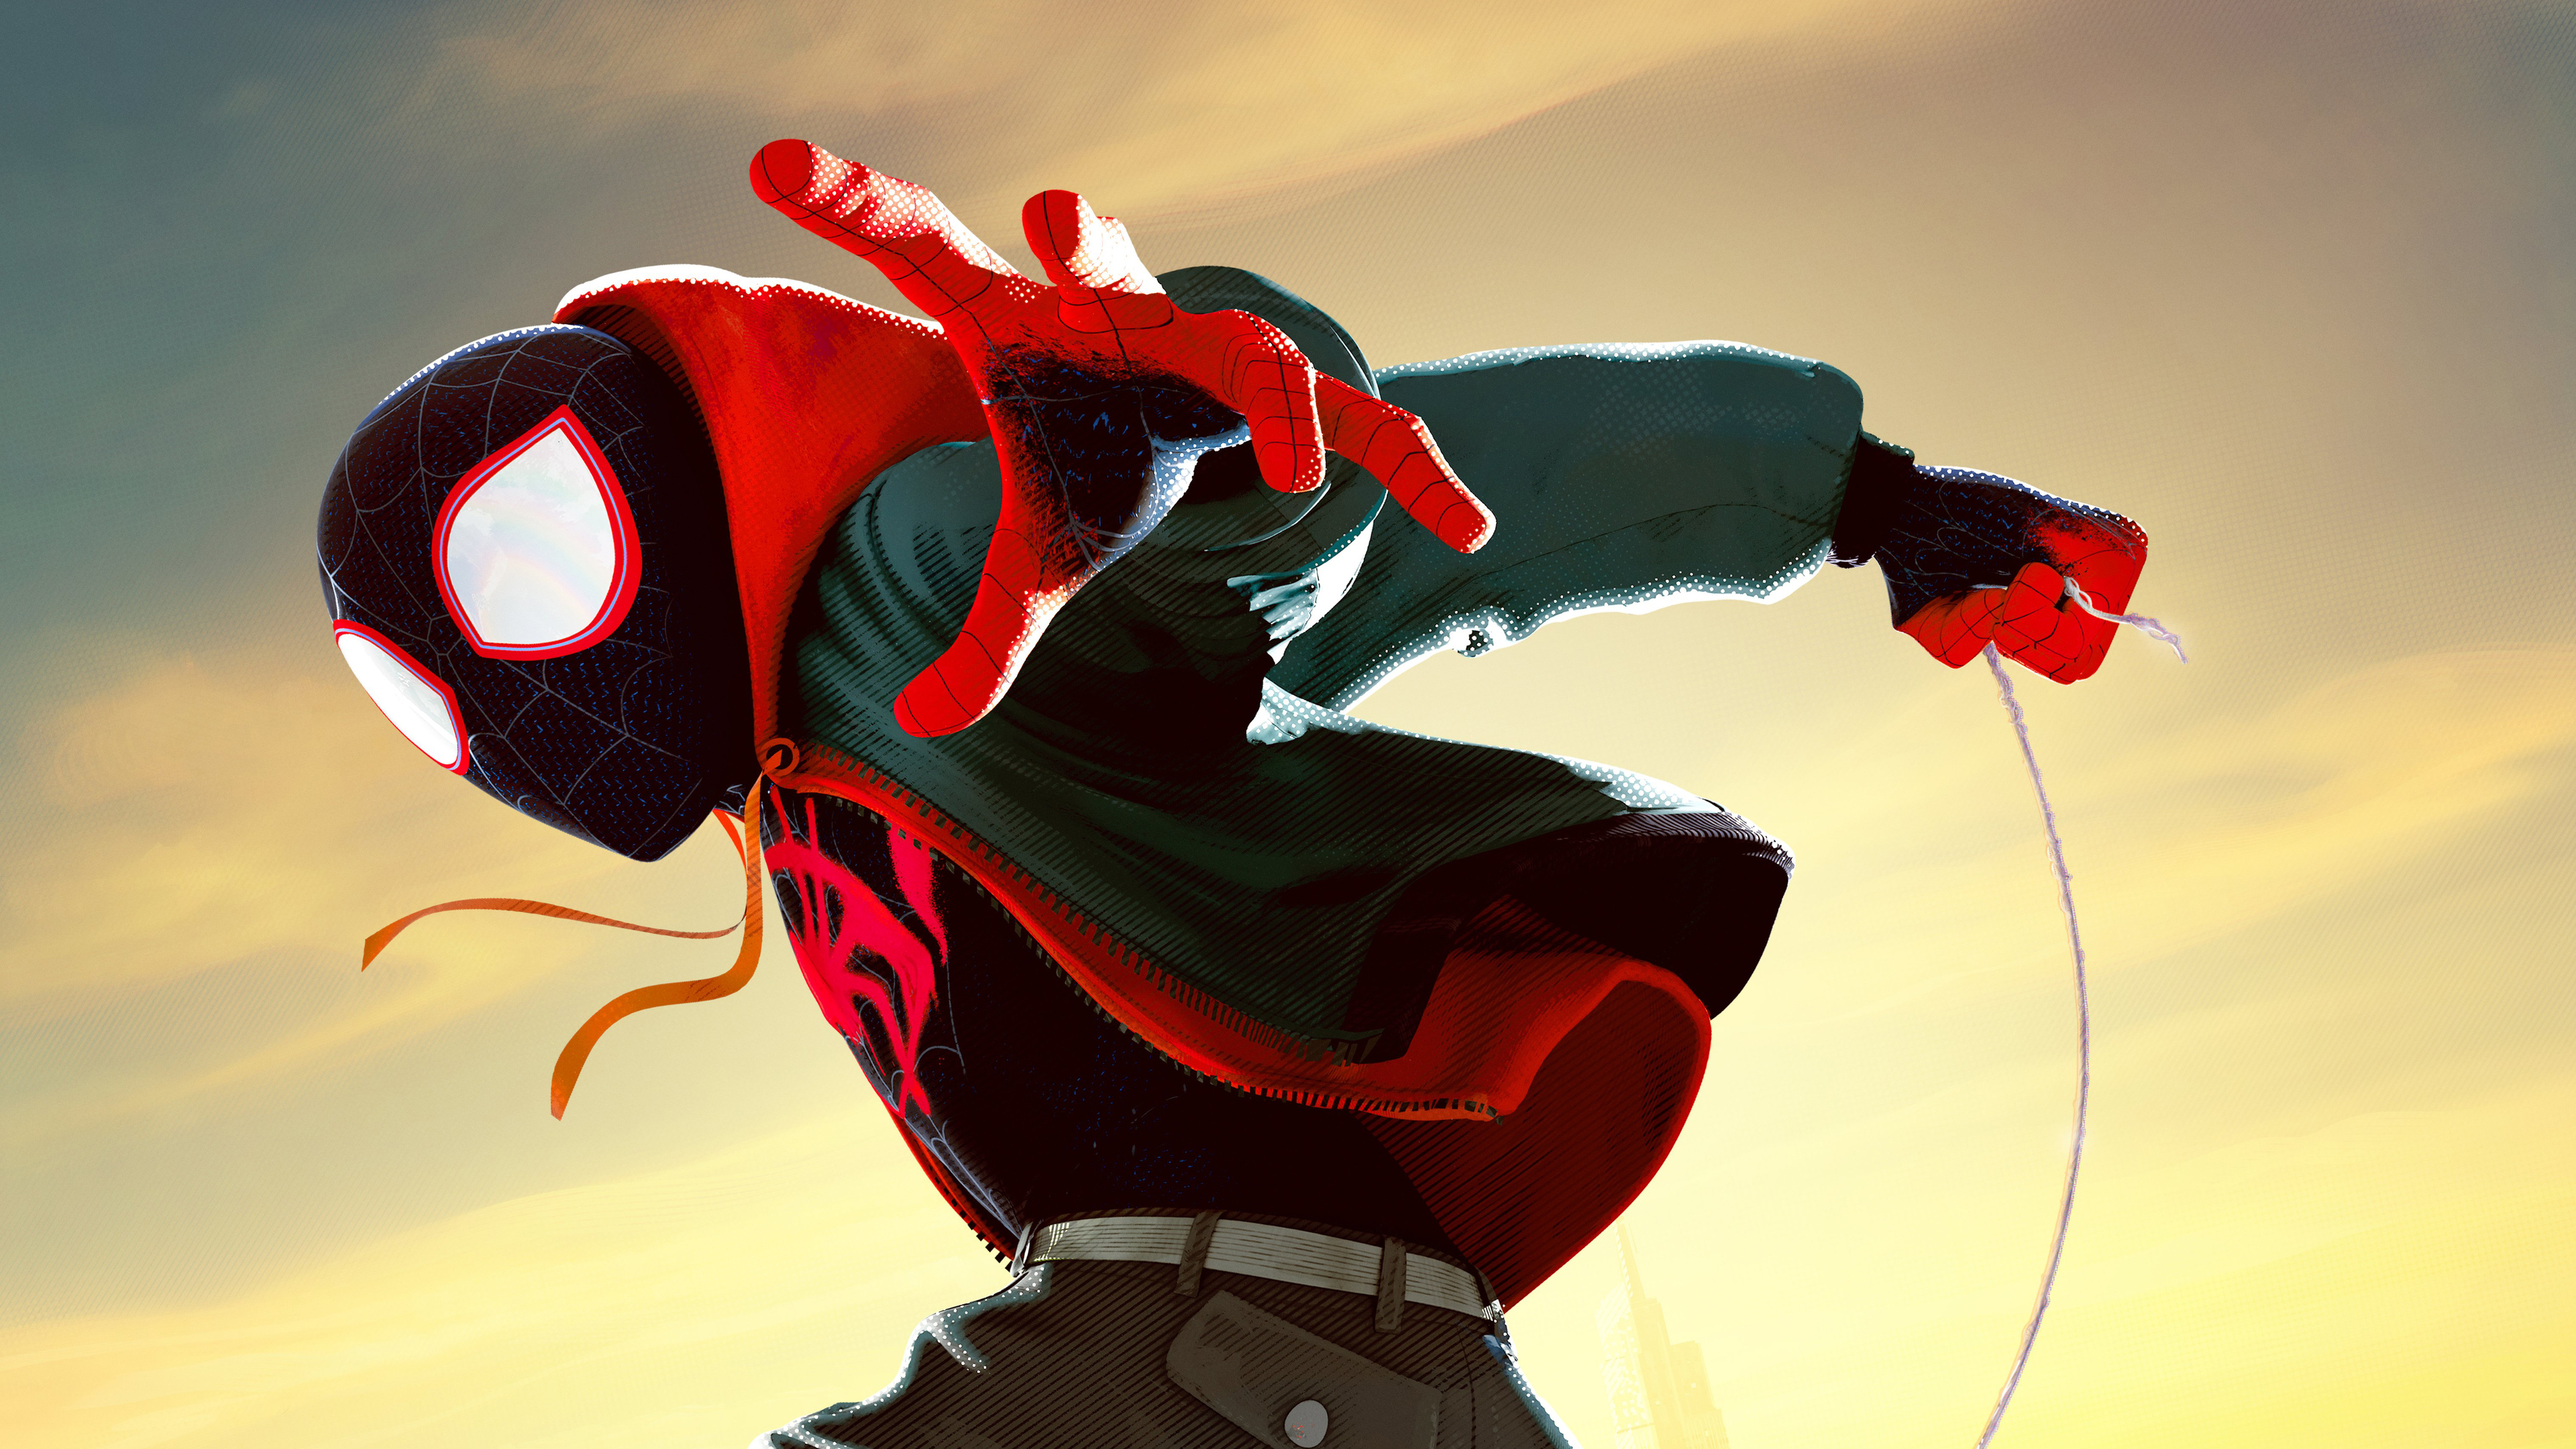 miles morales in spider man into the spider verse movie 5k 1543105181 - Miles Morales In Spider Man Into The Spider Verse Movie 5k - spiderman wallpapers, spiderman into the spider verse wallpapers, movies wallpapers, hd-wallpapers, animated movies wallpapers, 5k wallpapers, 4k-wallpapers, 2018-movies-wallpapers